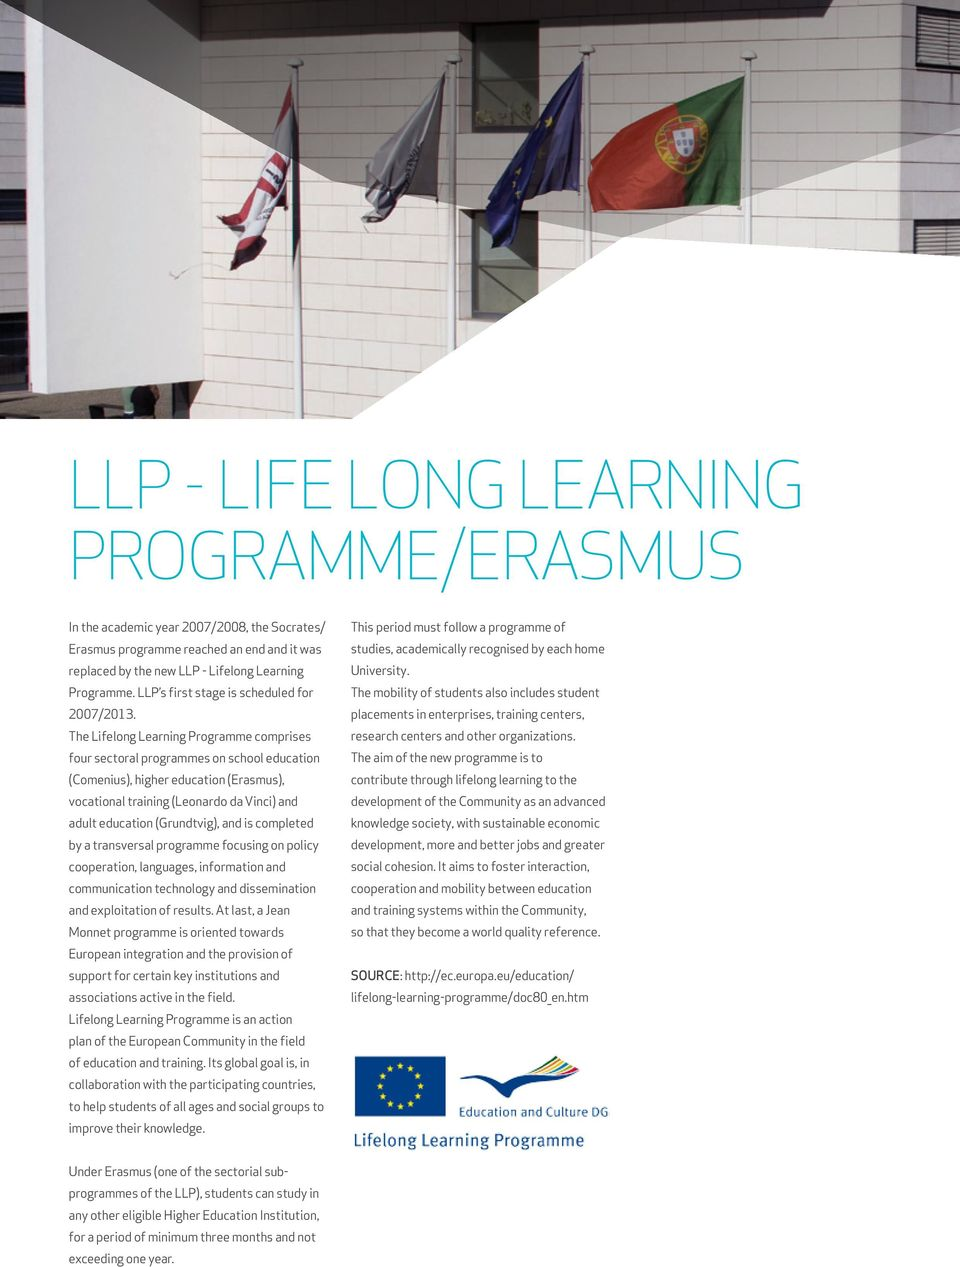 The Lifelong Learning Programme comprises four sectoral programmes on school education (Comenius), higher education (Erasmus), vocational training (Leonardo da Vinci) and adult education (Grundtvig),